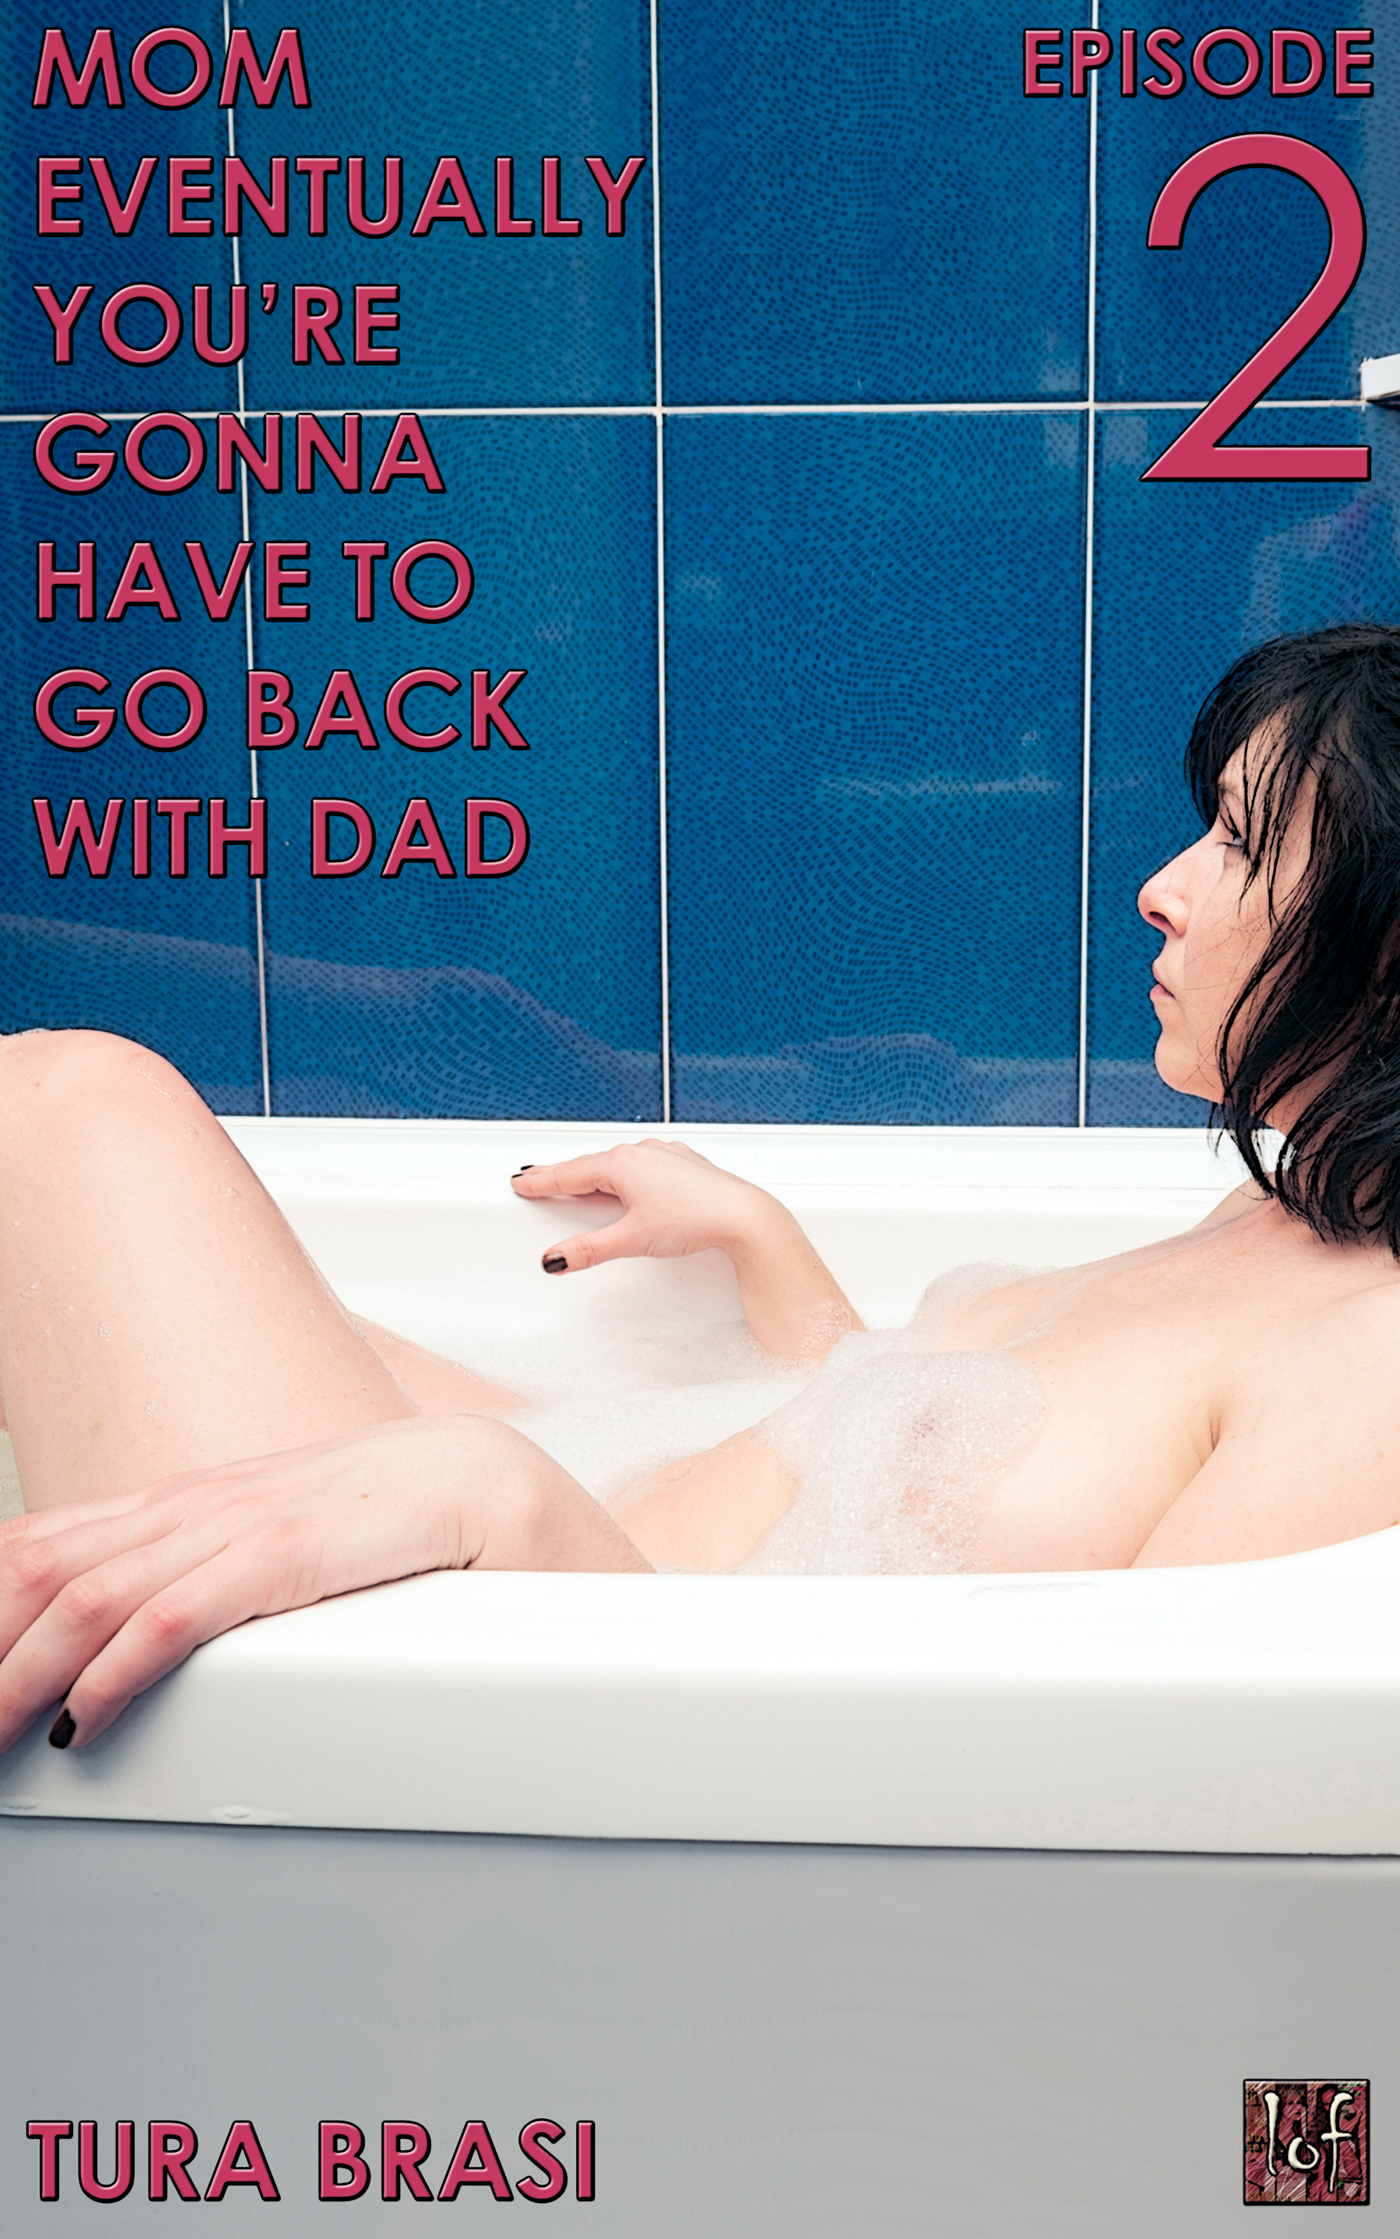 LOF New Release: Mom Eventually You're Gonna Have To Go Back With Dad: Episode 2